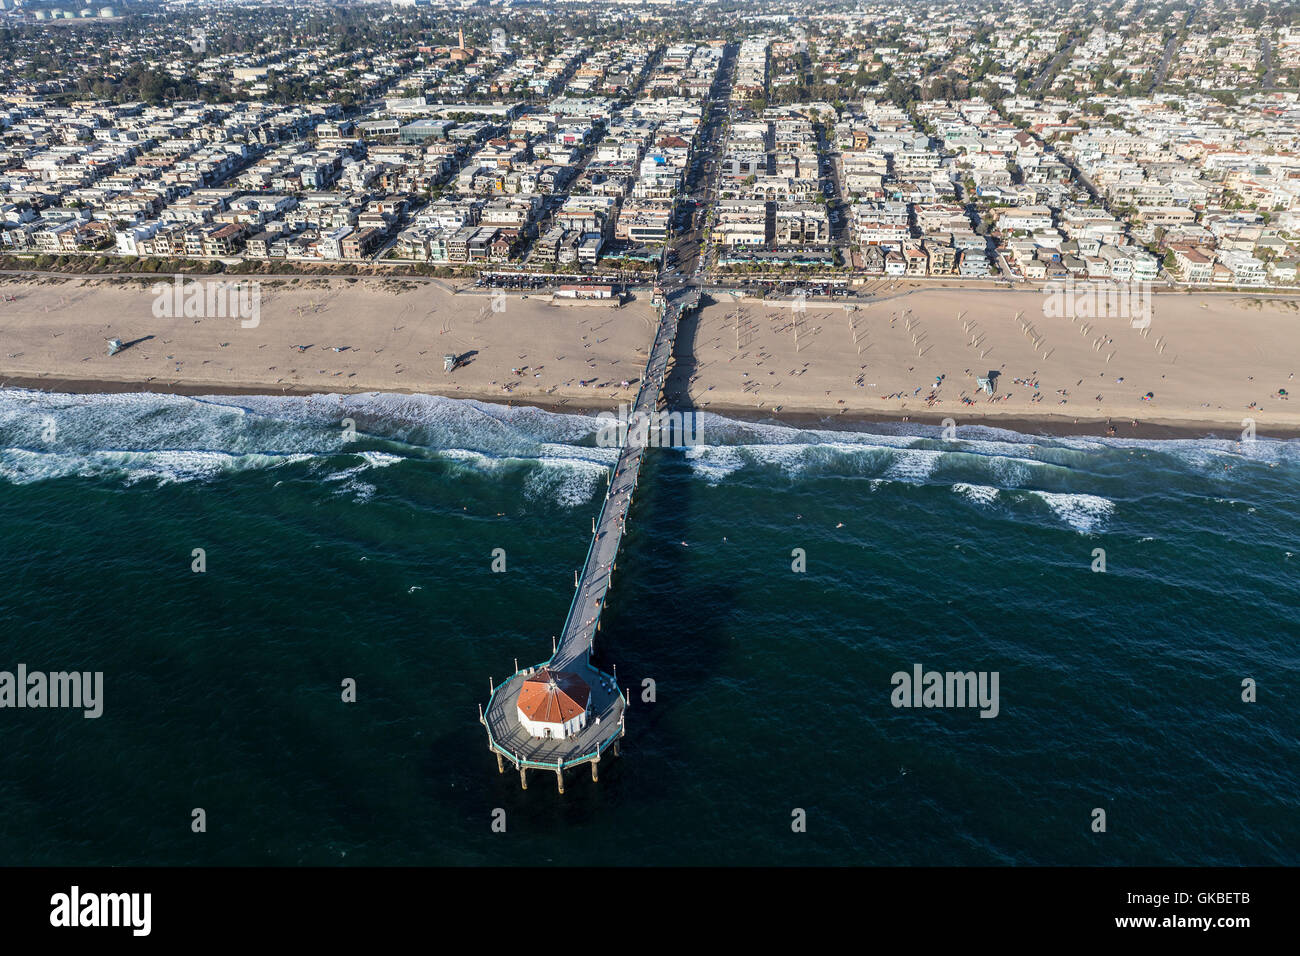 Afternoon aerial view of Manhattan Beach Pier near Los Angeles, California. - Stock Image